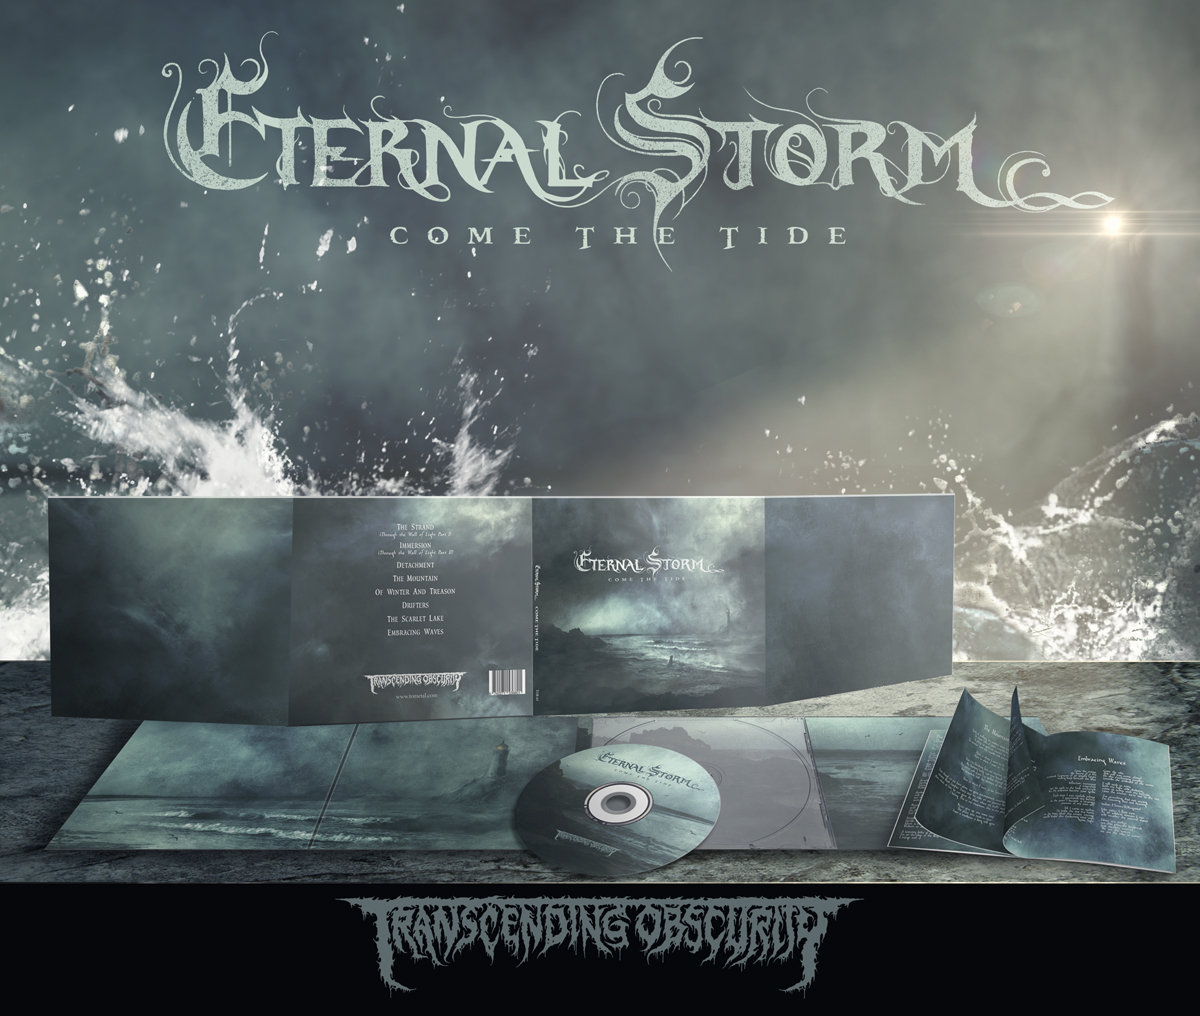 ETERNAL STORM (Spain) - 'Come The Tide' 8-Panel Digipak CD with 12-Page Booklet in Matt Paper (Free Pre-order Badge!)